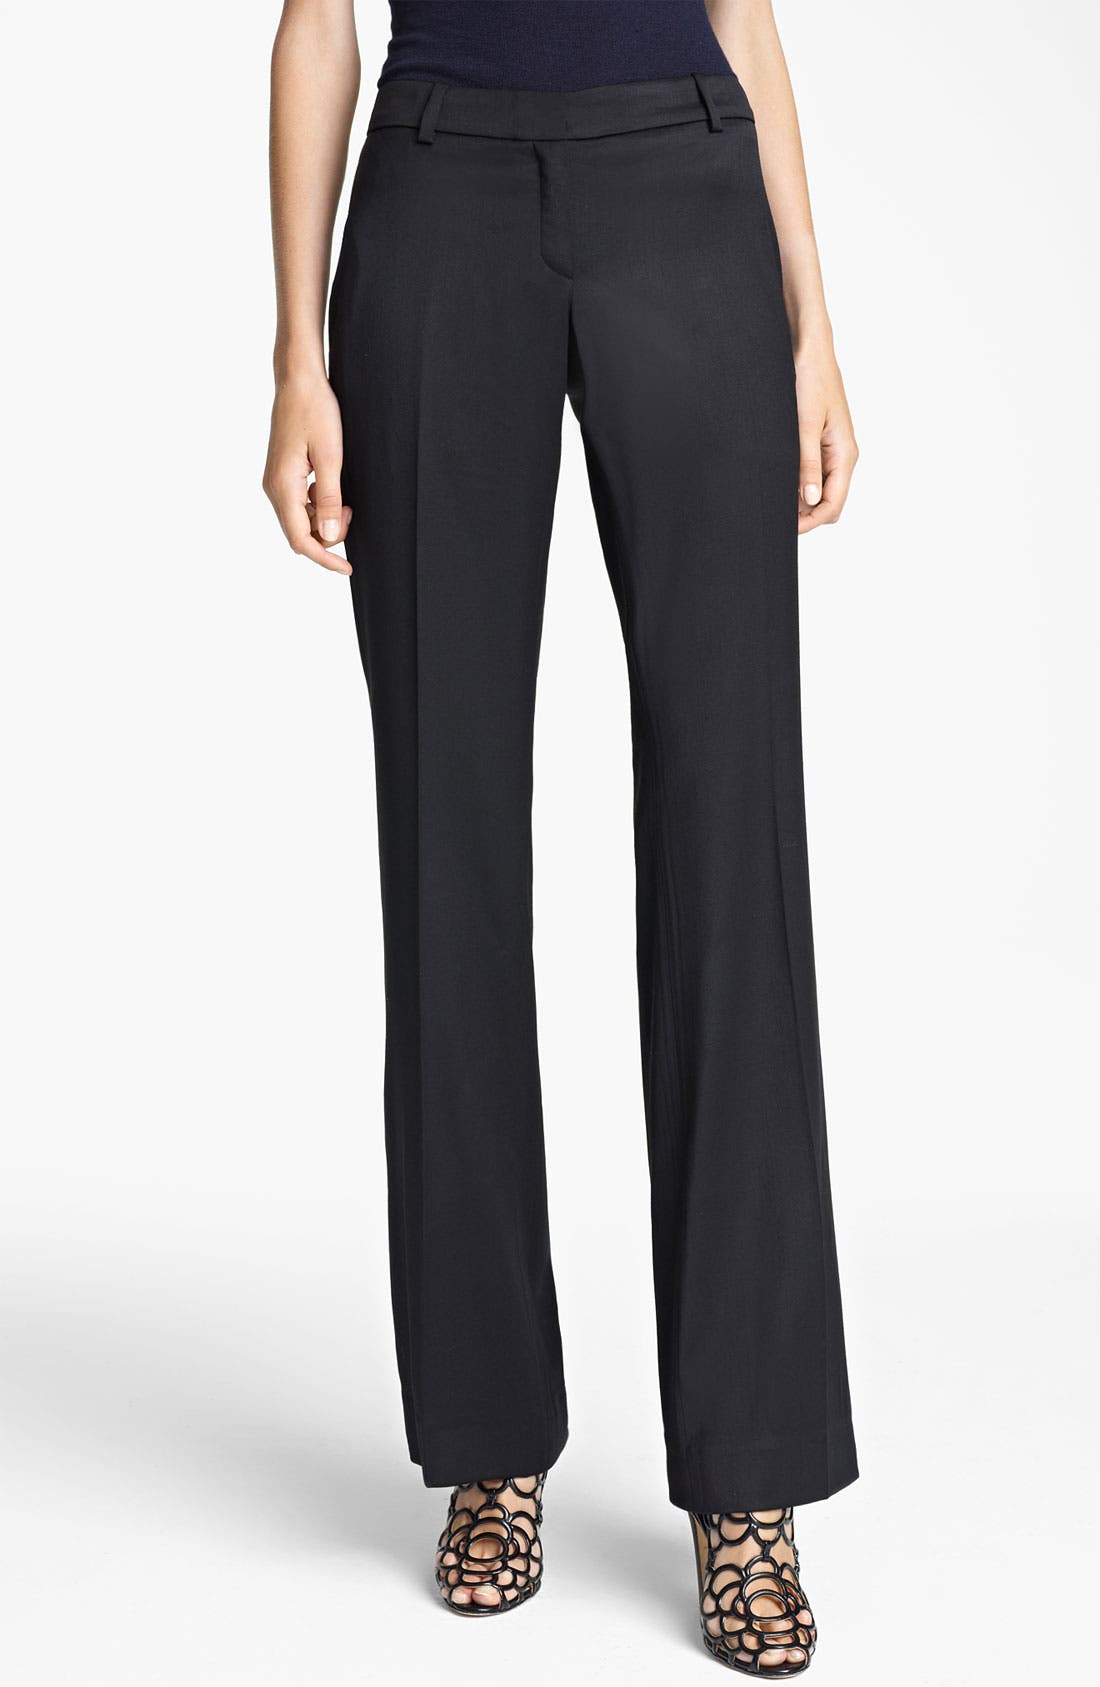 Alternate Image 1 Selected - Oscar de la Renta Gabardine Pants